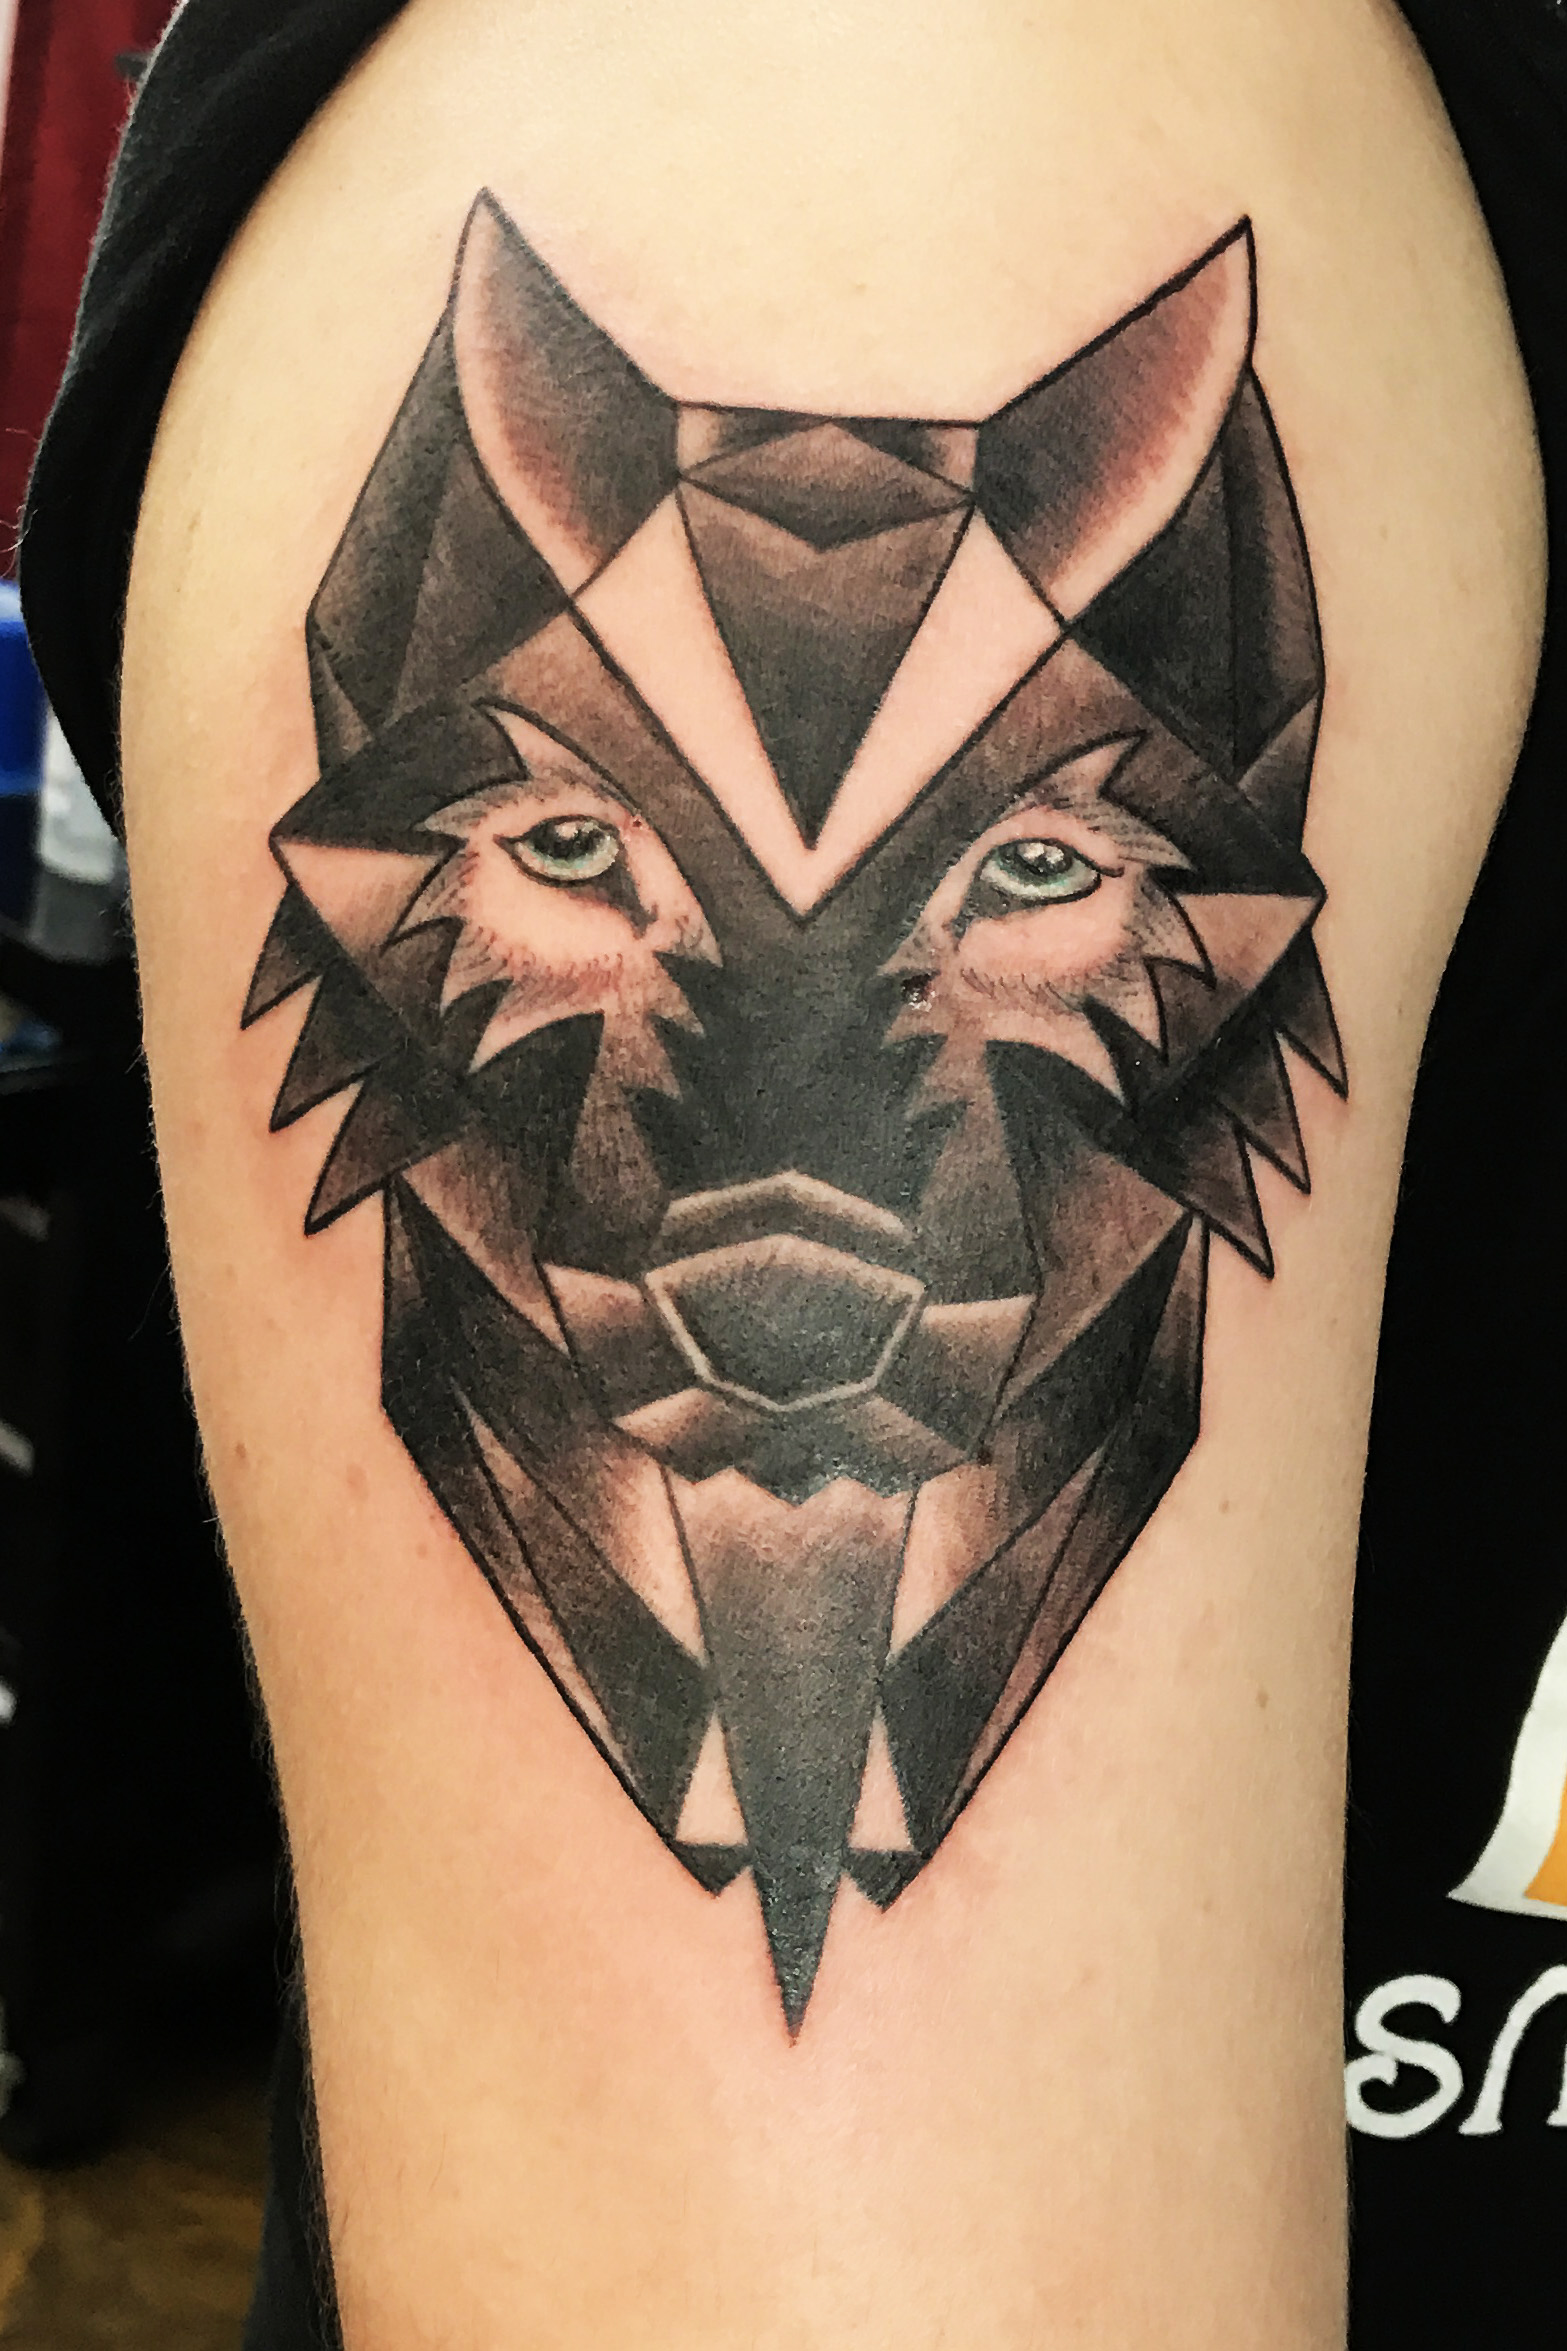 Geometrical Games of Thrones wolf, direwolves for the Stark family. Black and gray tattoo on upper arm half sleeve.